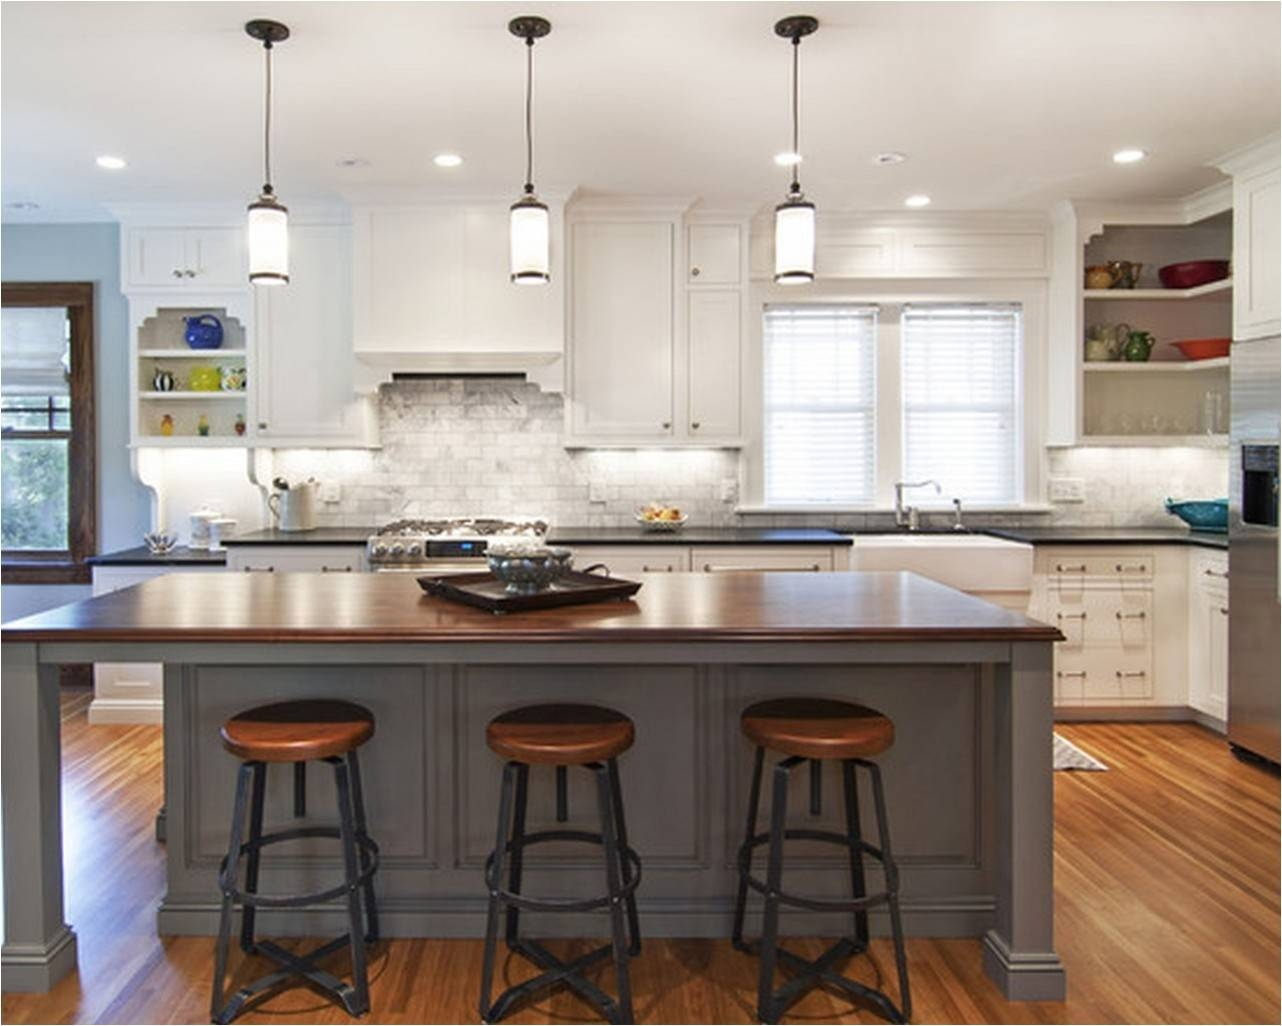 Cozy And Inviting Kitchen Island Lighting | Lighting Designs Ideas in Mini Pendant Lights for Kitchen Island (Image 3 of 15)